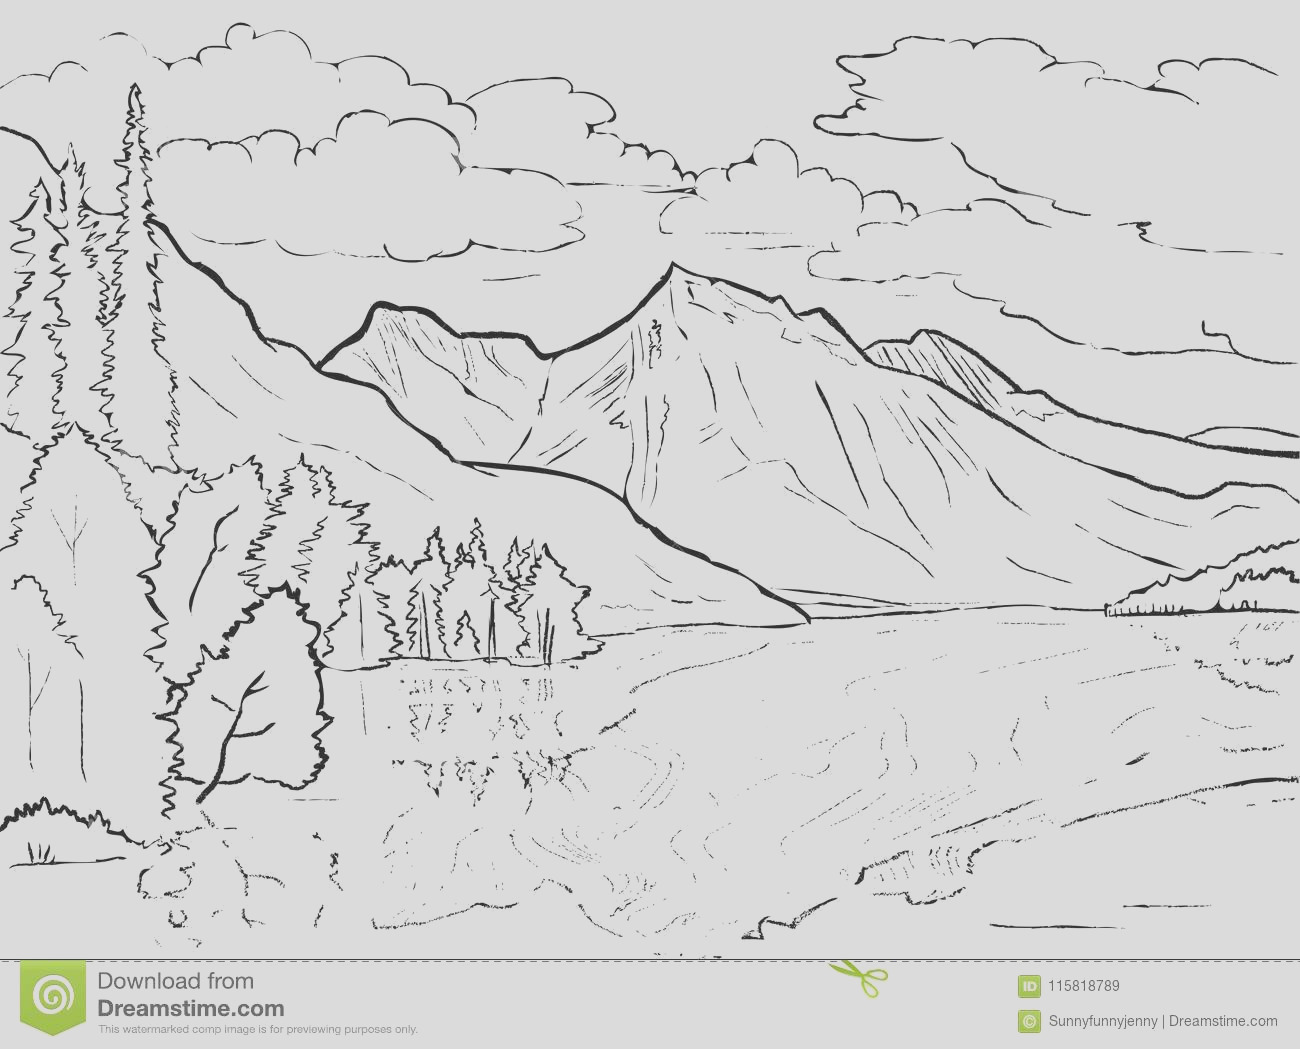 vector coloring page canadian landscape lake mountains trees vector coloring page canadian landscape lake mountains tr image